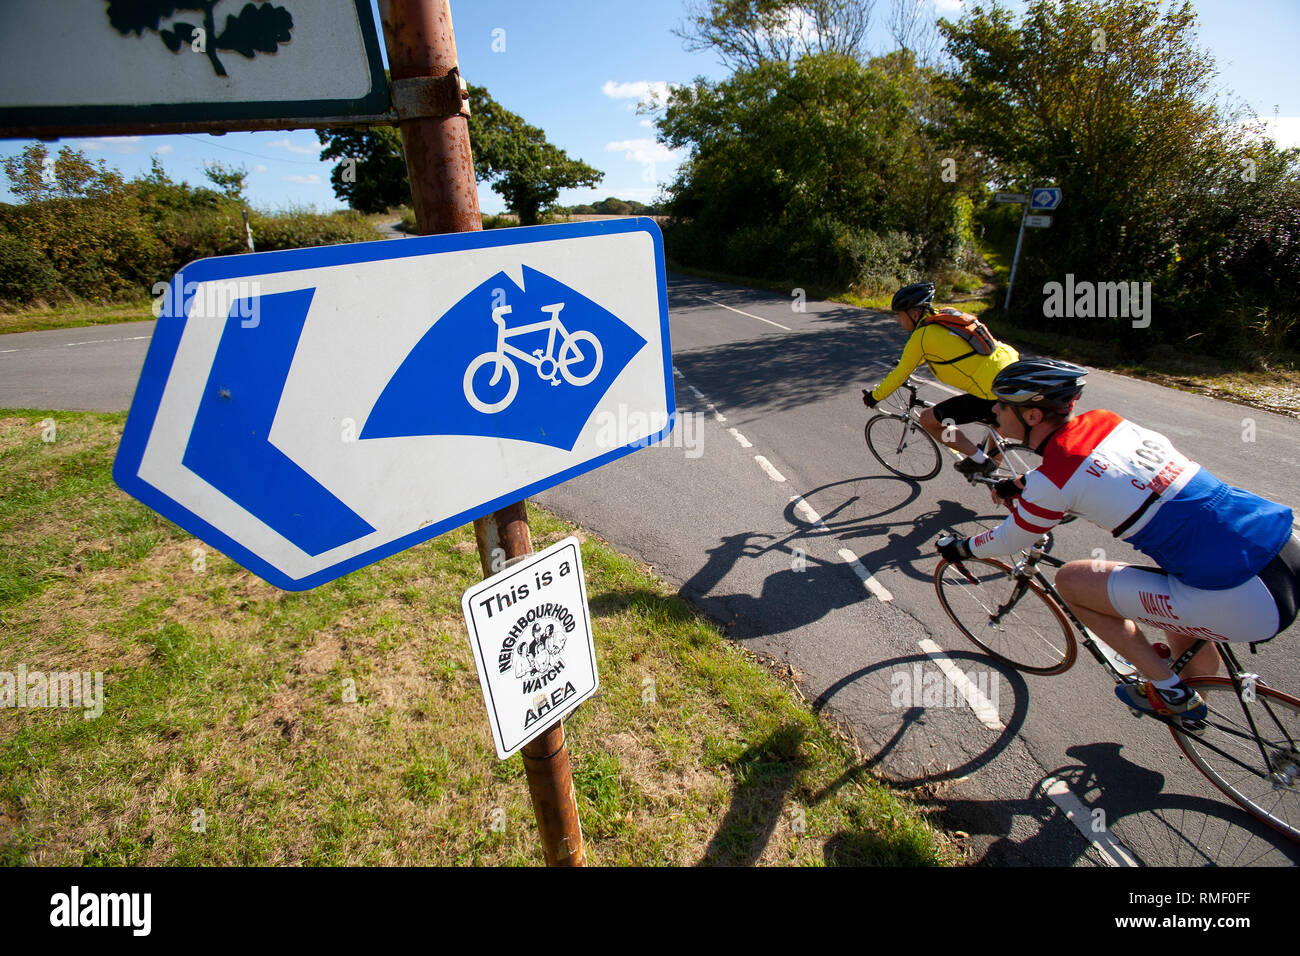 Cycle, Cycling, festival, randonee, vintage, endurance, union, jack, flag, clown, street, festival,route, fitness, fun, exercise, - Stock Image